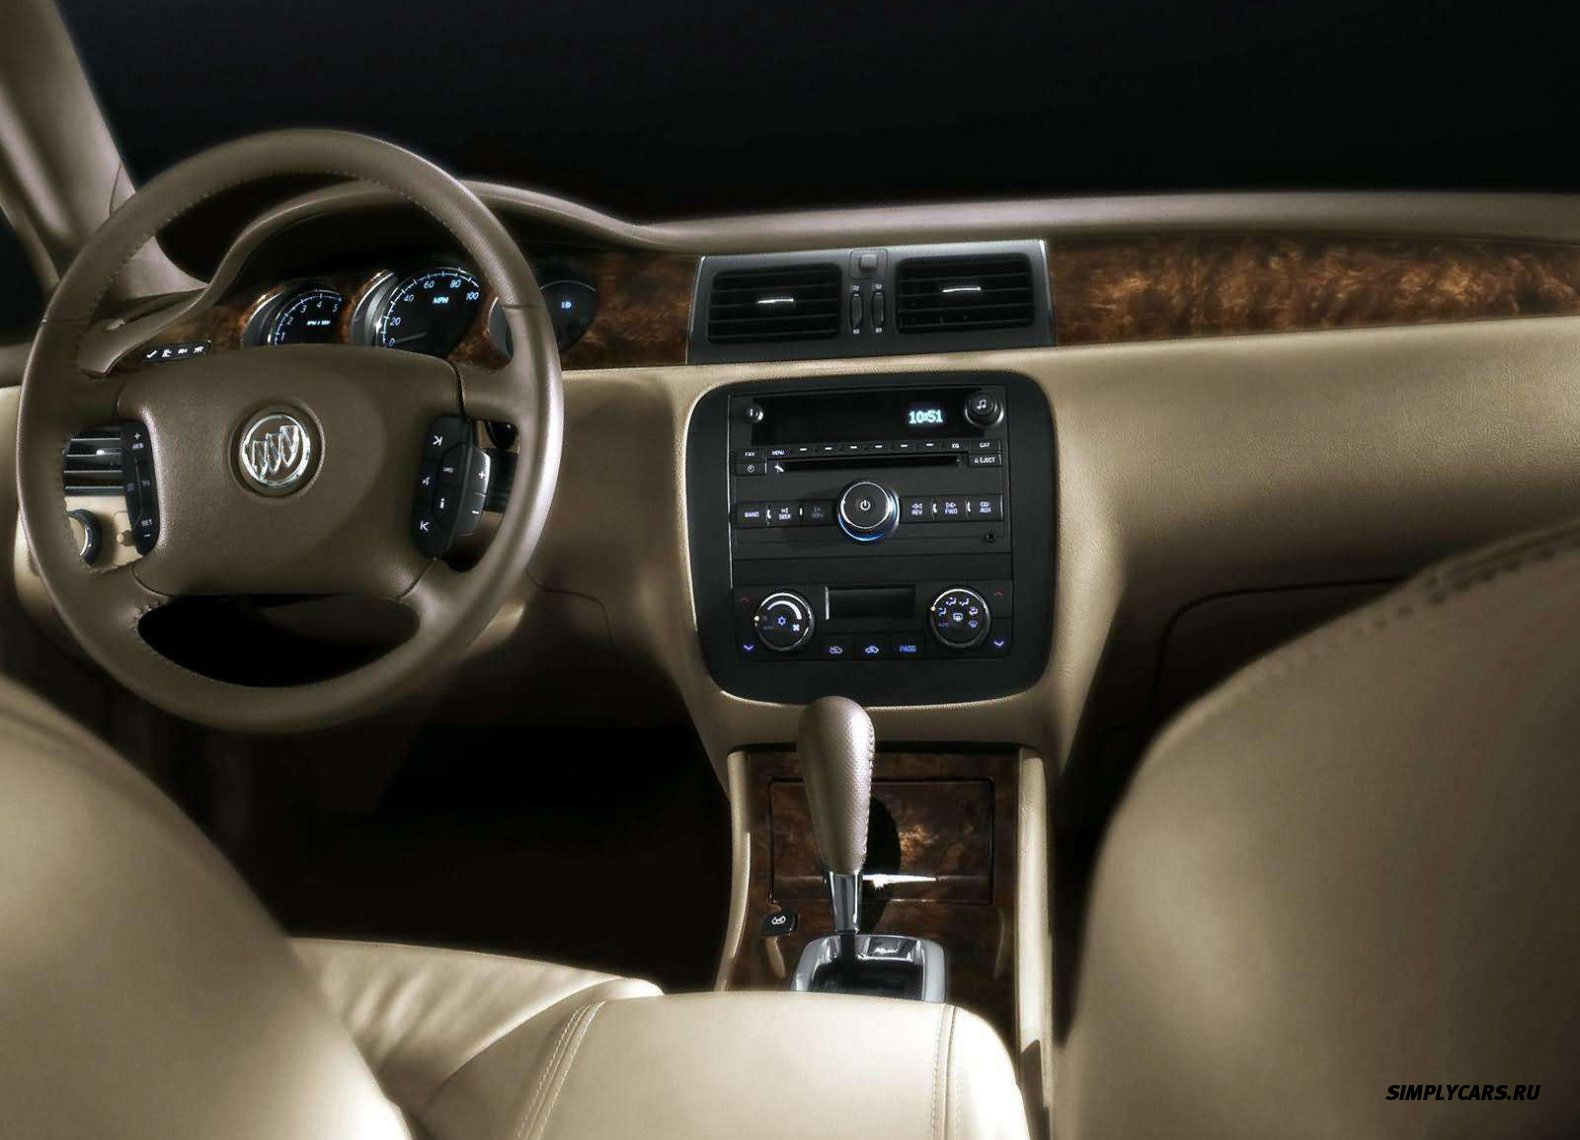 Buick lucerne interior photos Used Buick at WeBe Autos Serving Long Island, NY